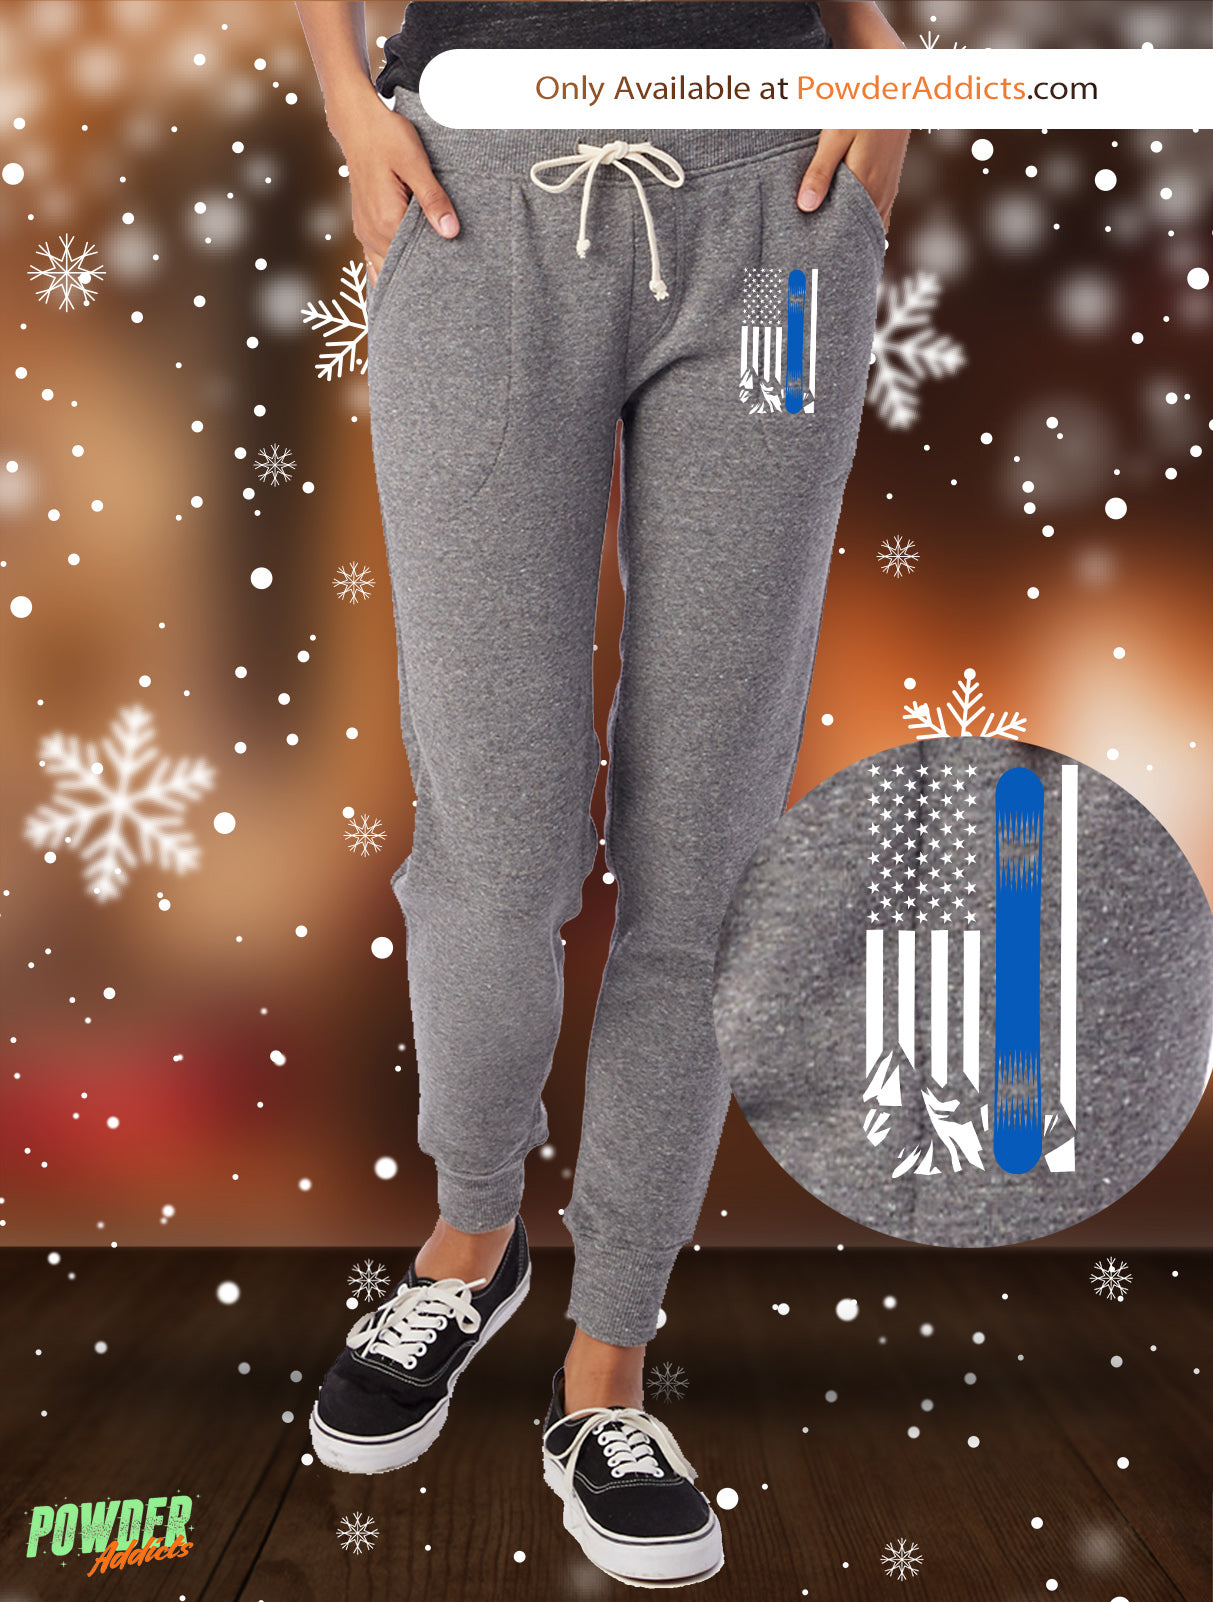 USA Snowboard Flag Thin Blue Line Women's Adult Fleece Jogger - Powderaddicts